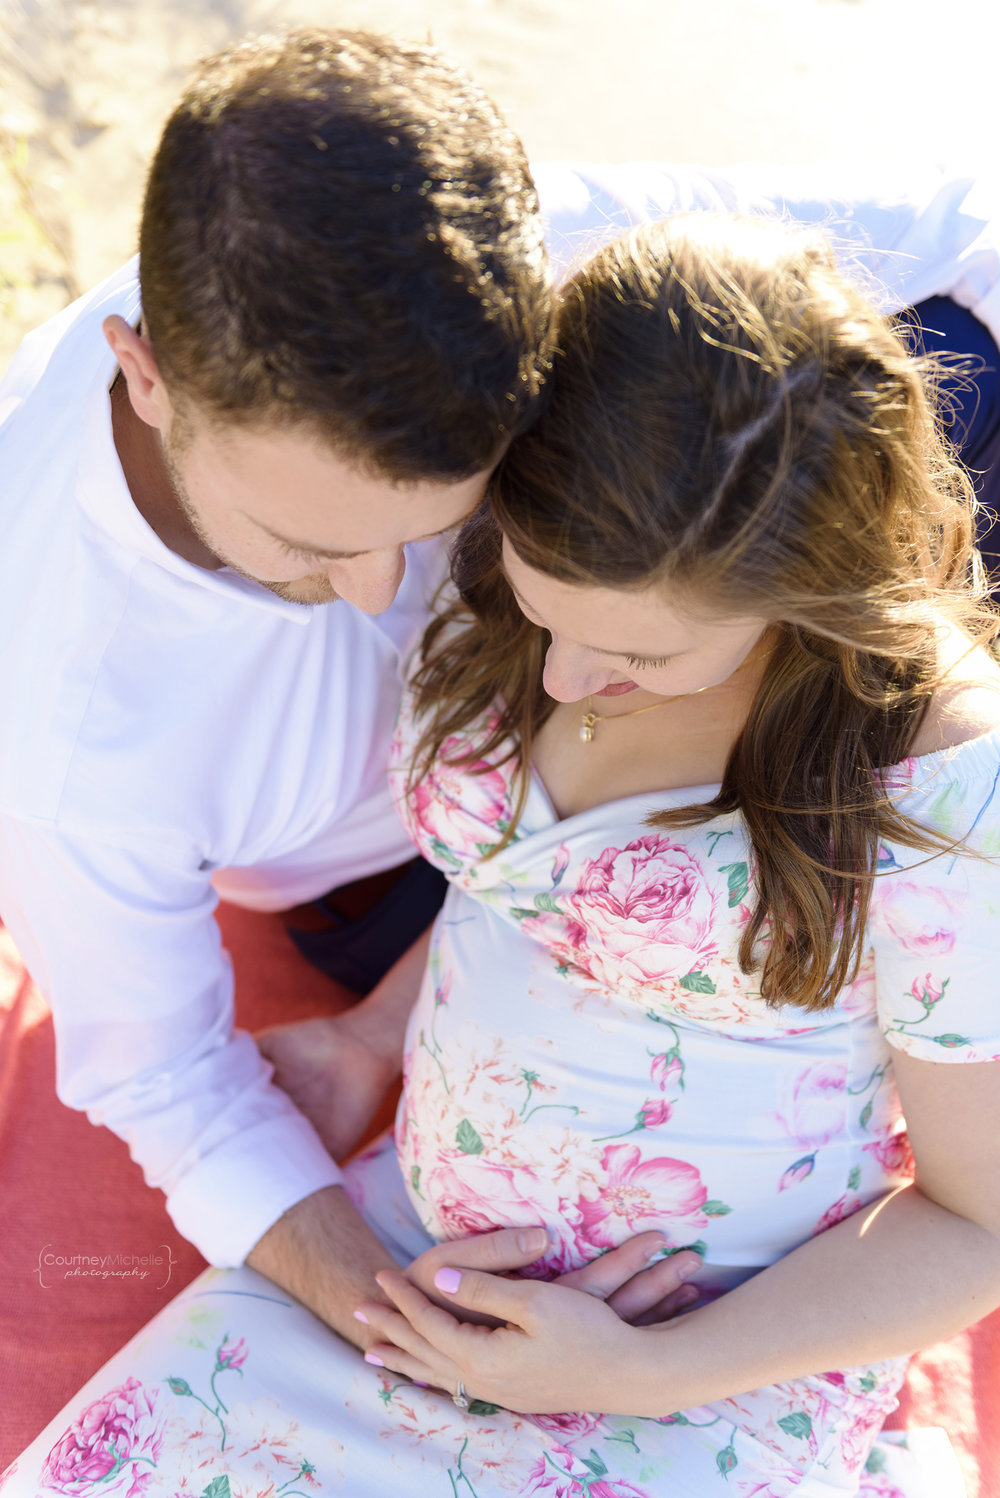 montrose-beach-chicago-maternity-session-courtney-laper©COPYRIGHTCMP-Maternity-3046-edit.jpg